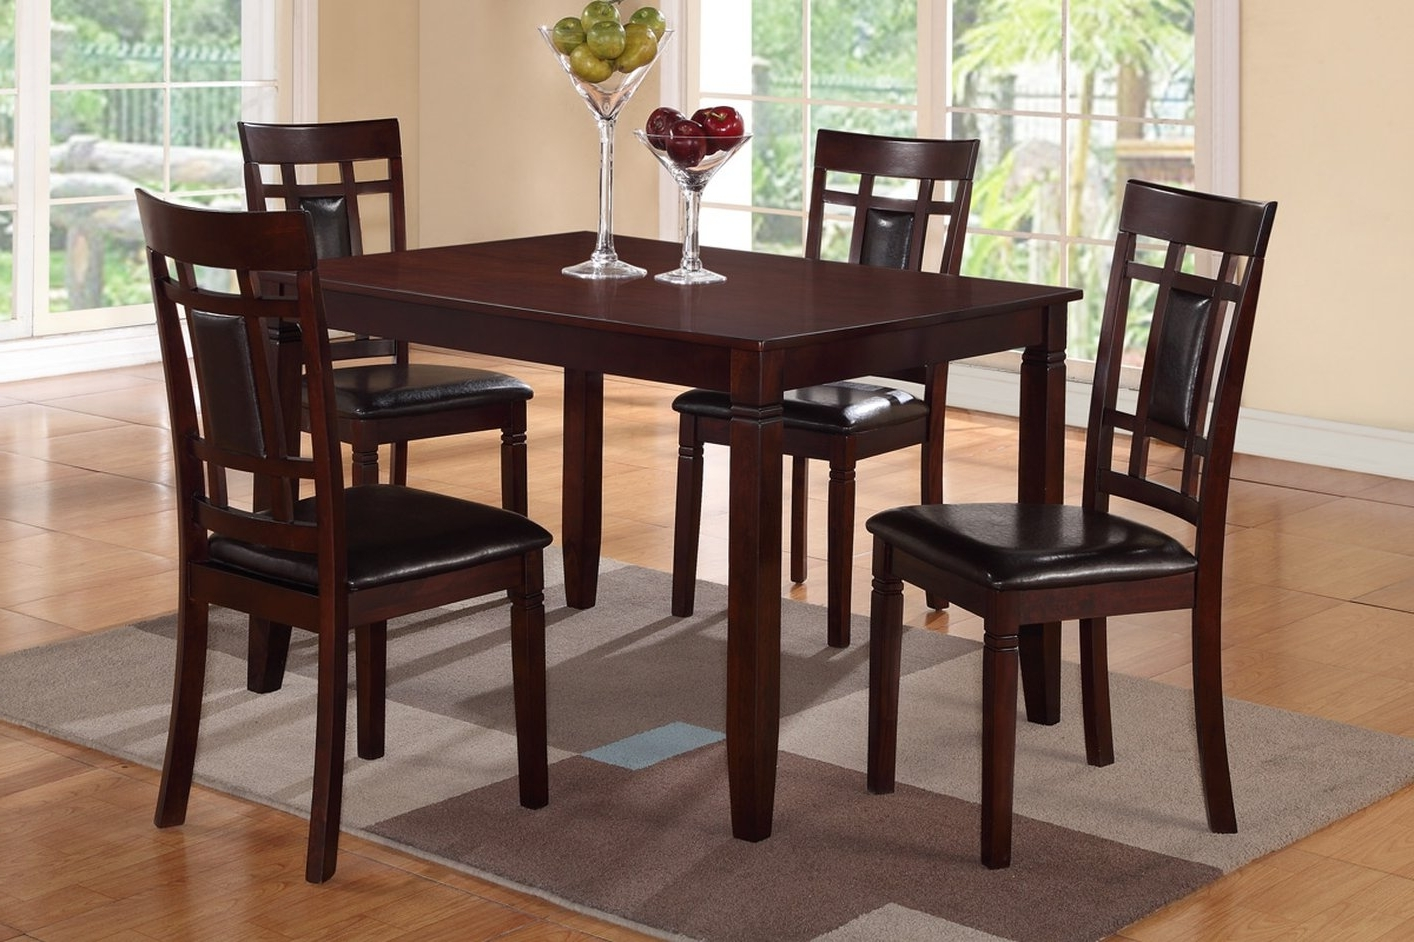 56 Dining Table Chair Set, Elegant Formal Dining Room Design With Pertaining To 2017 Dining Table Chair Sets (View 1 of 25)